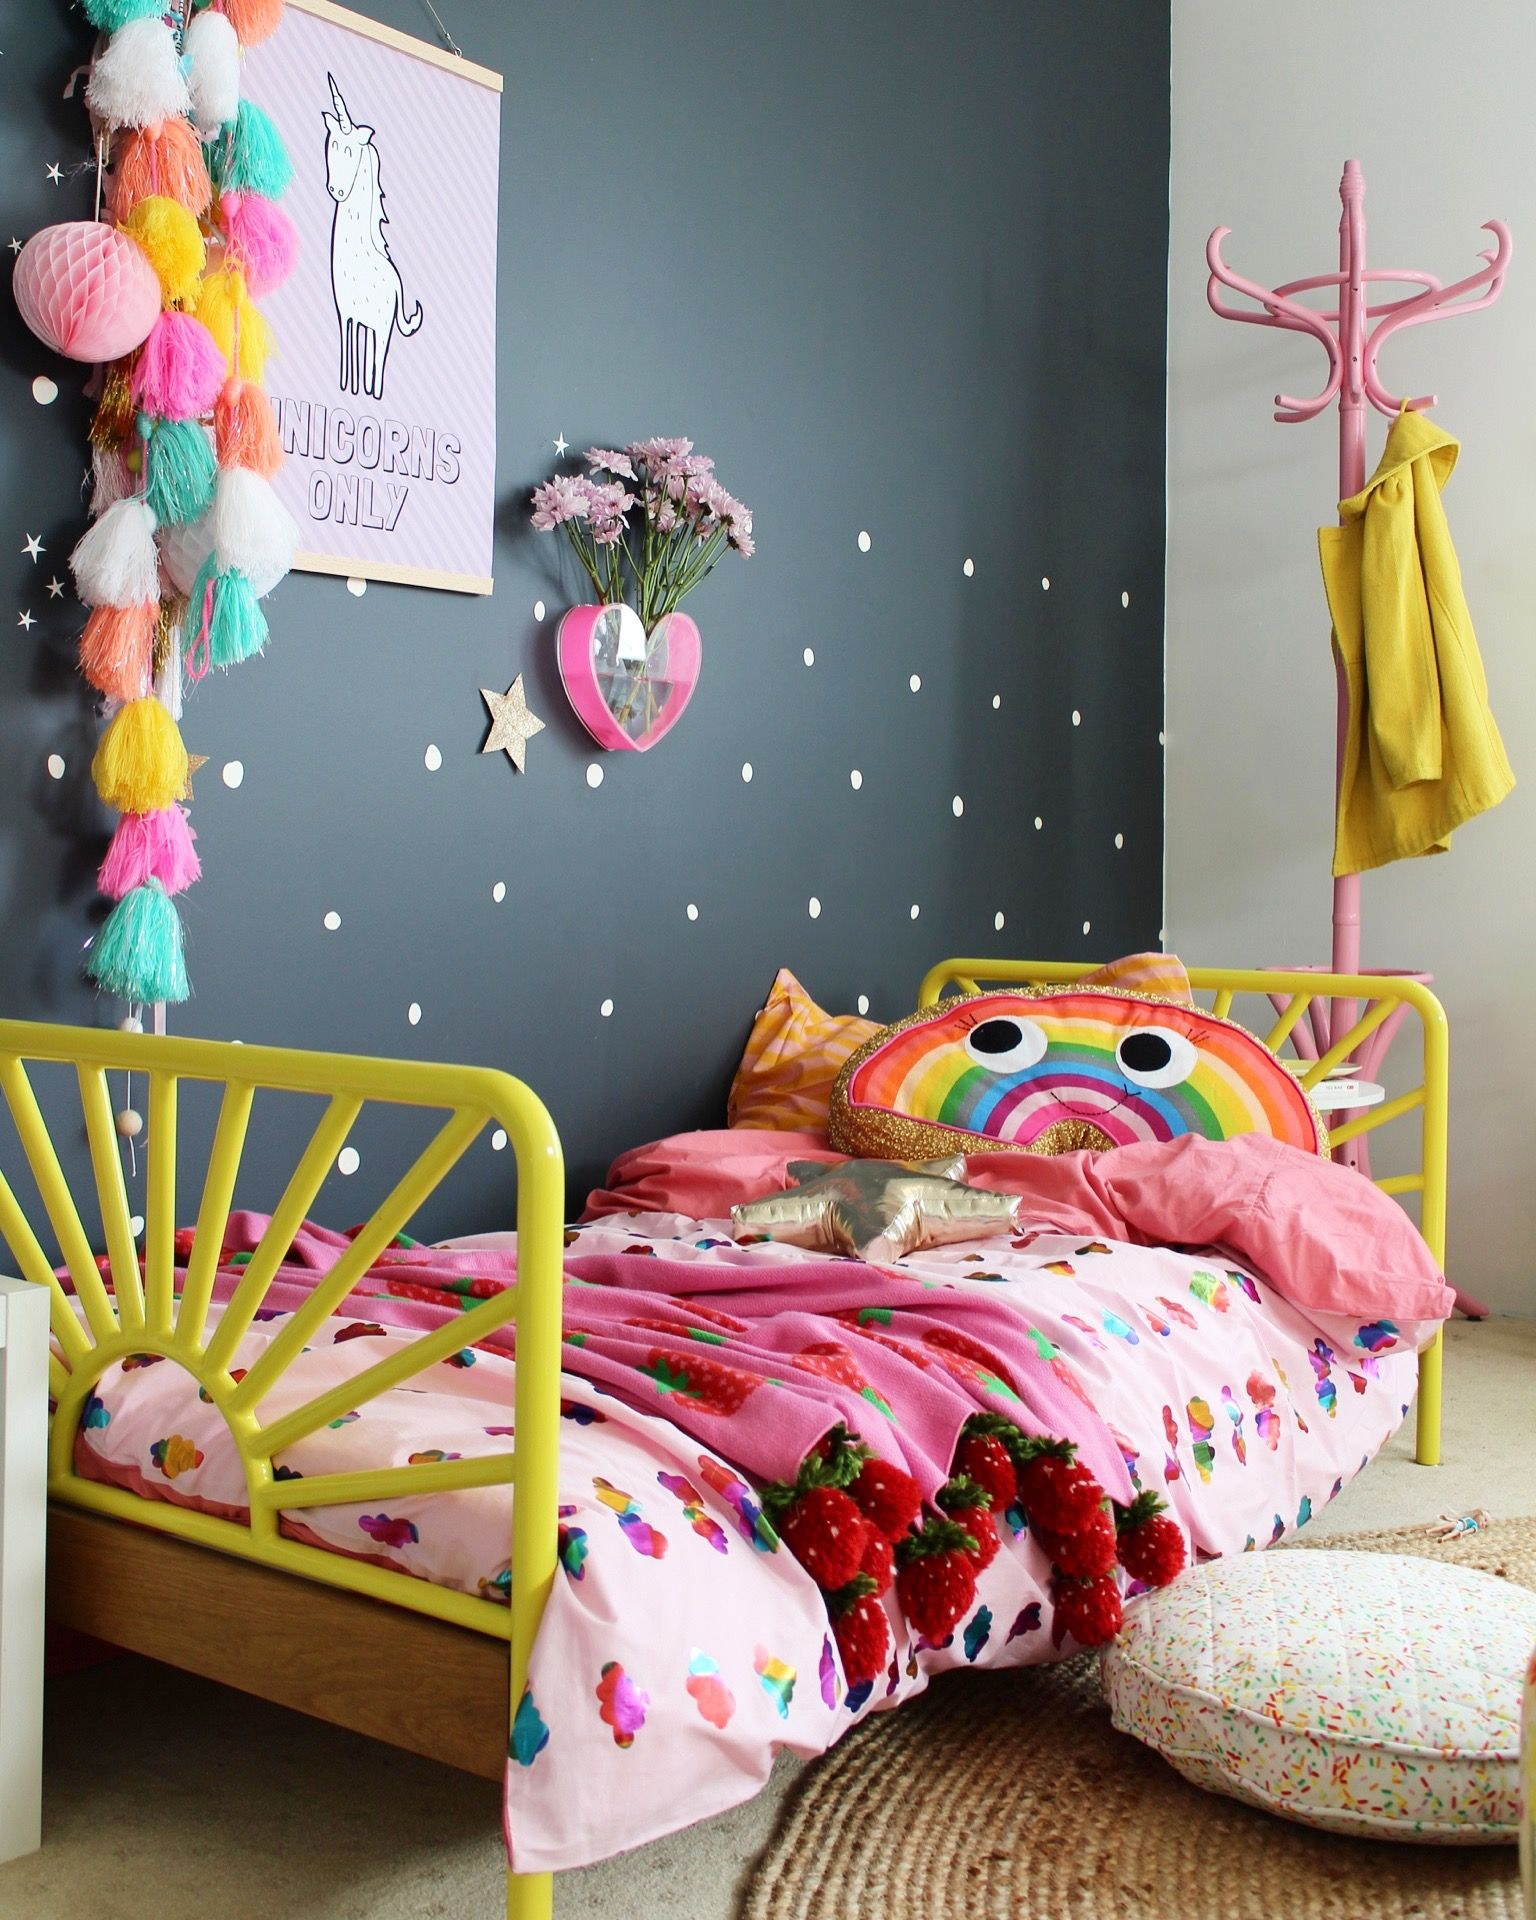 Colorful Kids Room Design: 25+ Amazing Girls Room Decor Ideas For Teenagers